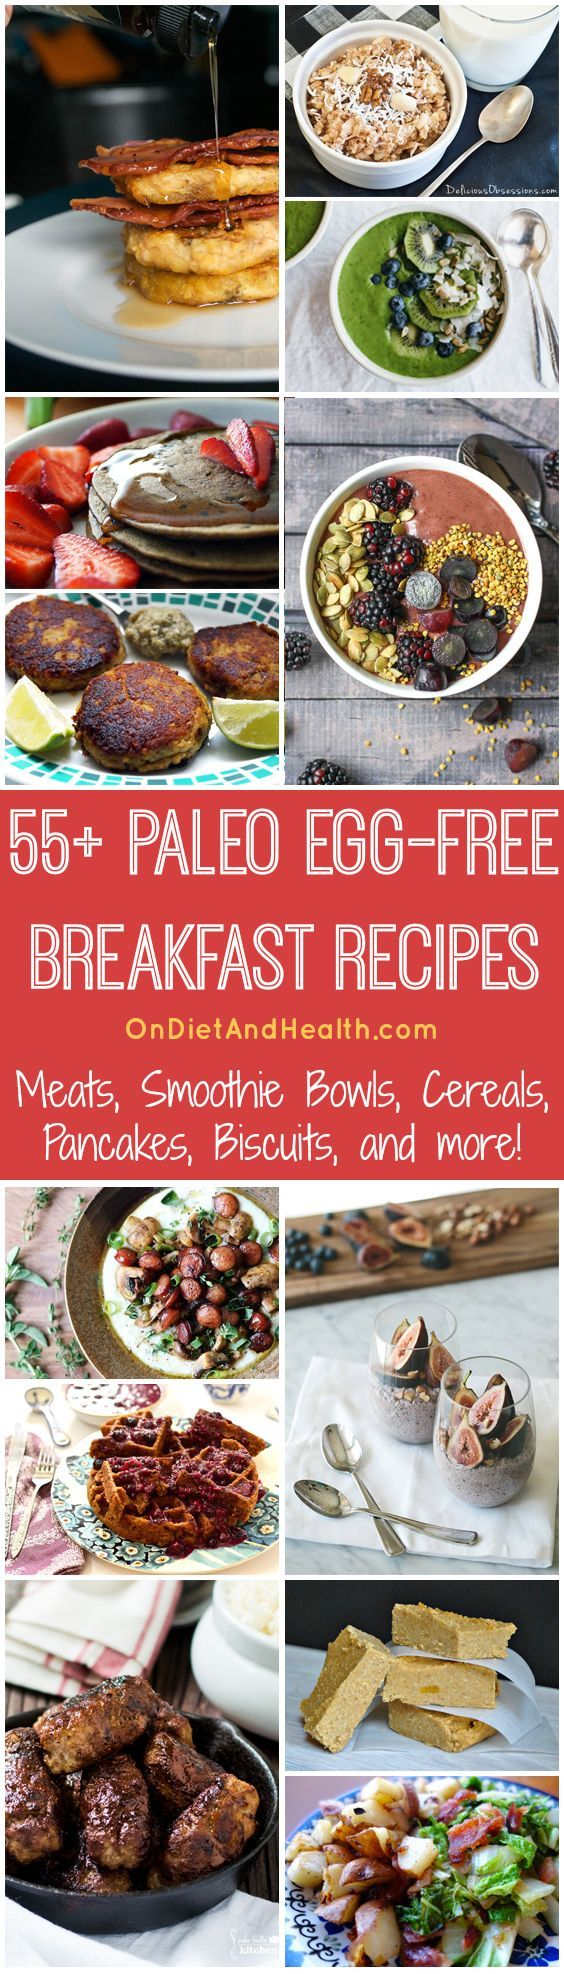 55 Paleo Egg-Free Breakfast Recipes Pinterest